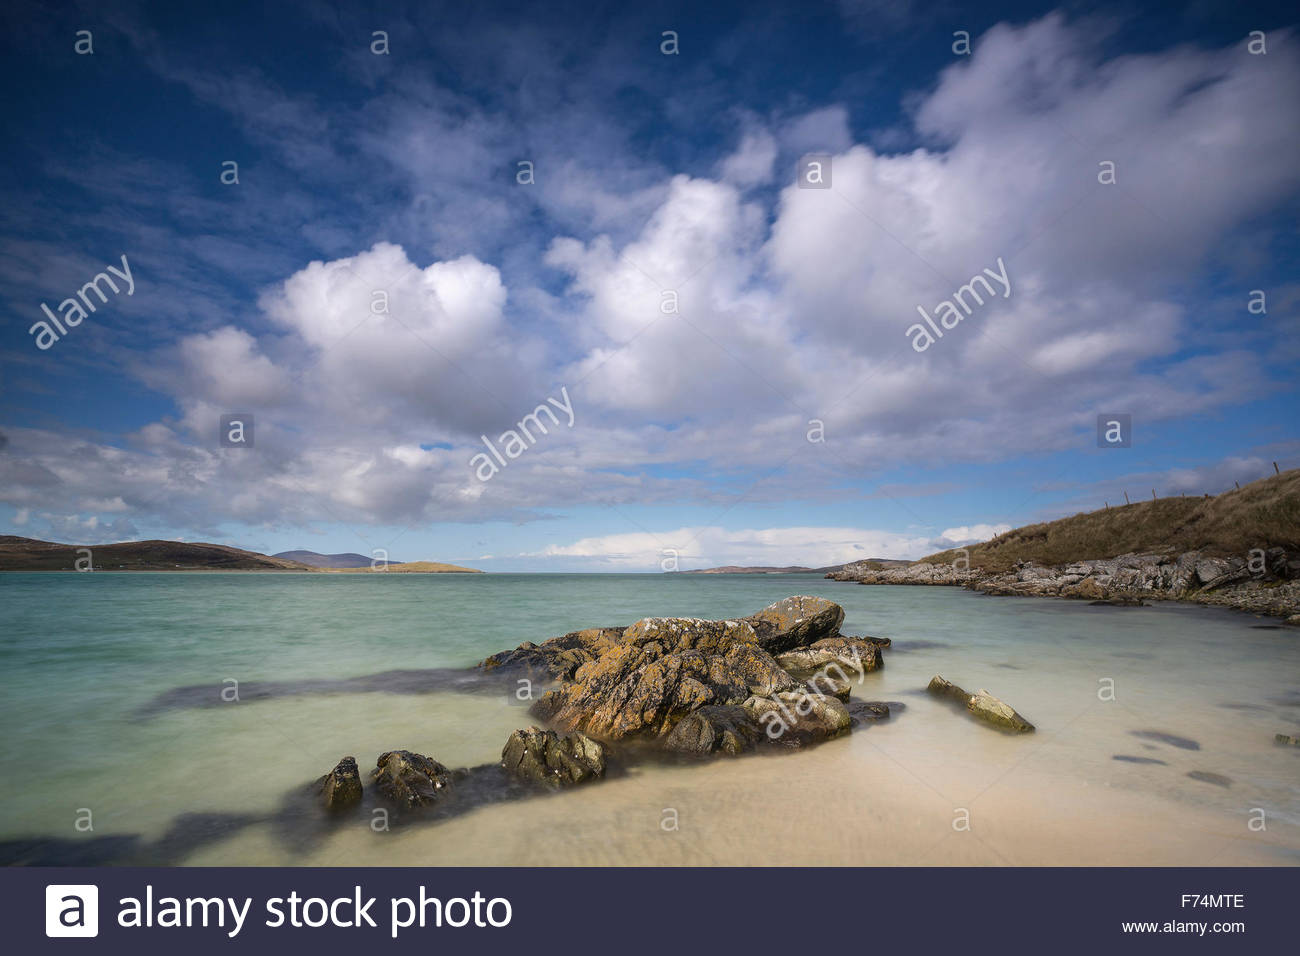 The coastline and sky at Luskentyre, Isle of Harris, Outer Hebrides, Scotland - Stock Image